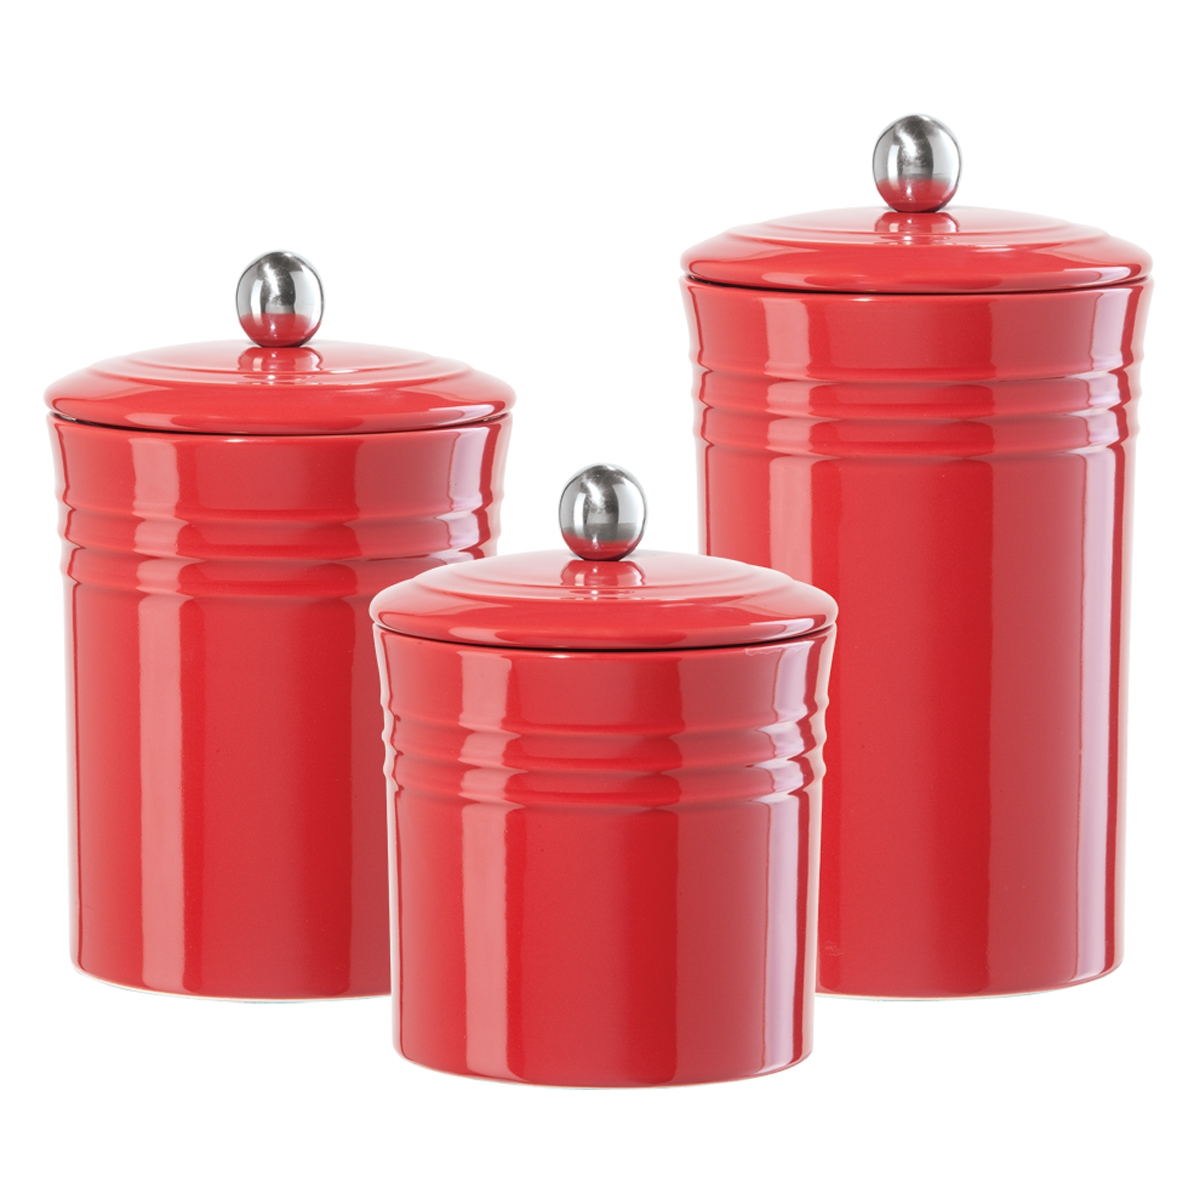 28 red kitchen canisters gallery for gt red kitchen red kitchen canisters gift amp home today storage canisters for the kitchen